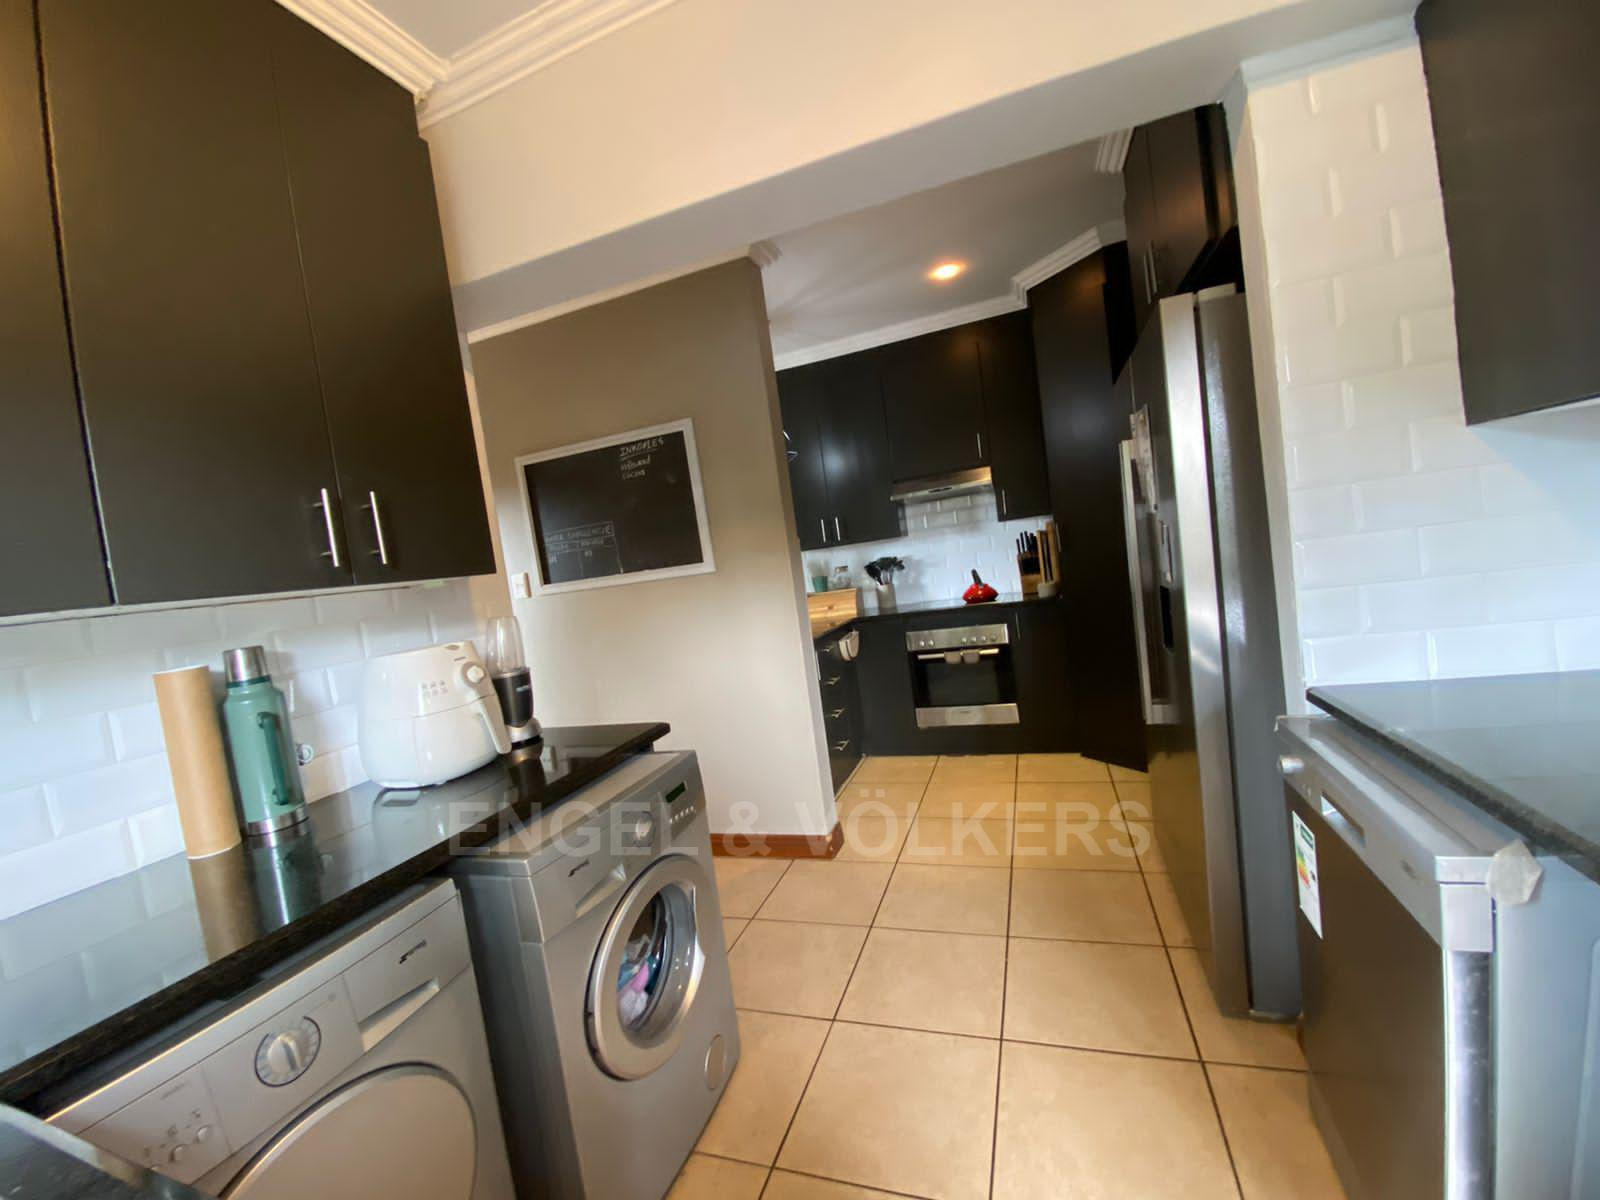 House in Melodie - Kitchen and scullery